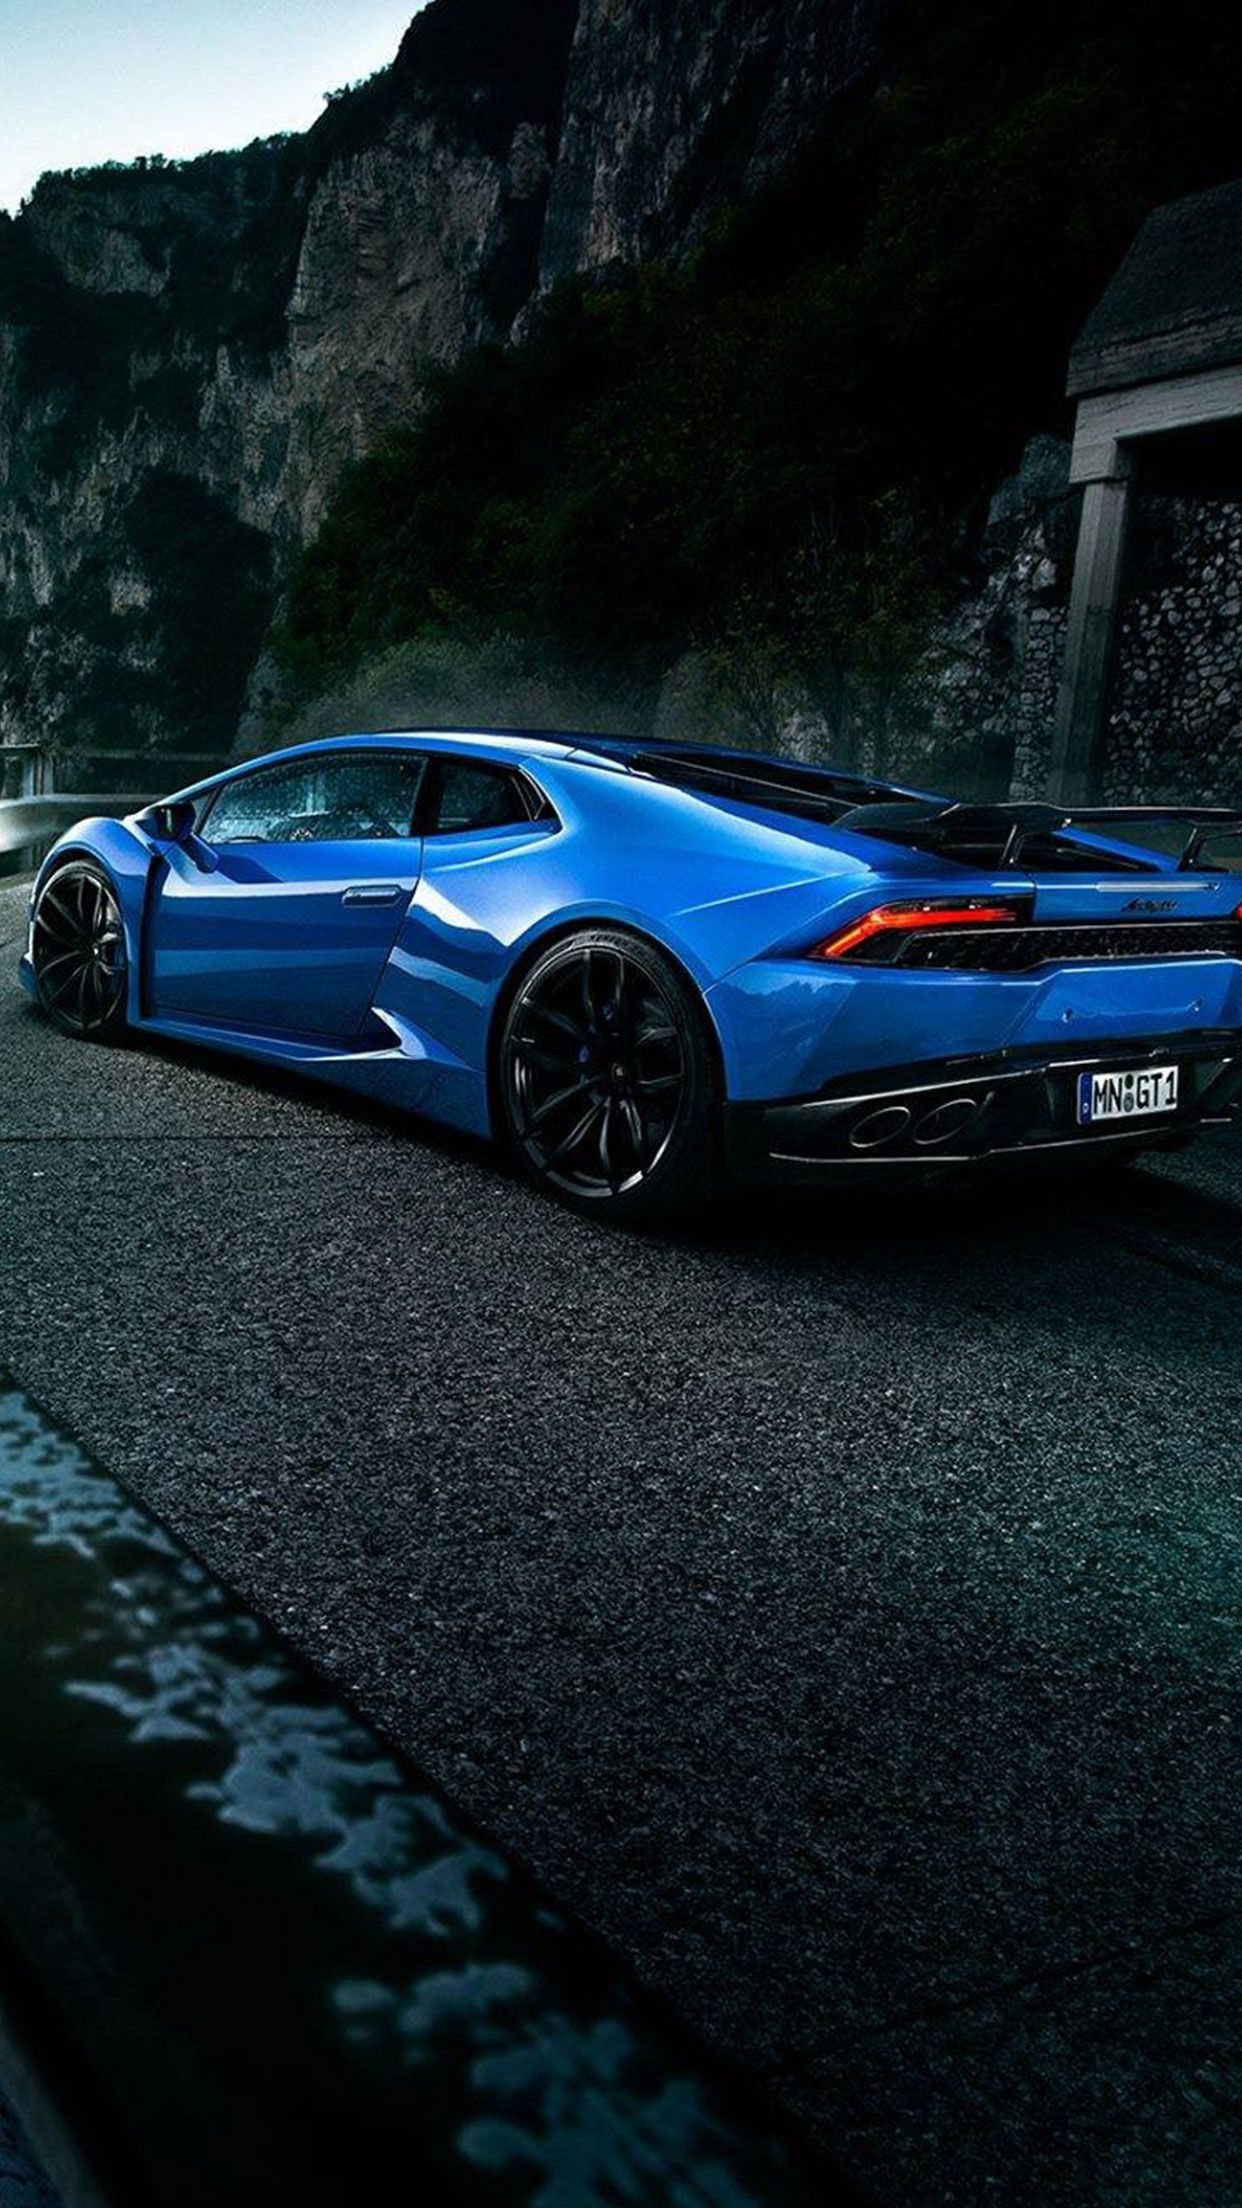 Blue Lamborghini Car Wallpaper Iphone Android Blue Lamborghini Car Wallpaper More On Wallzapp Co Cool Wallpapers Cars Car Wallpapers Sports Car Wallpaper